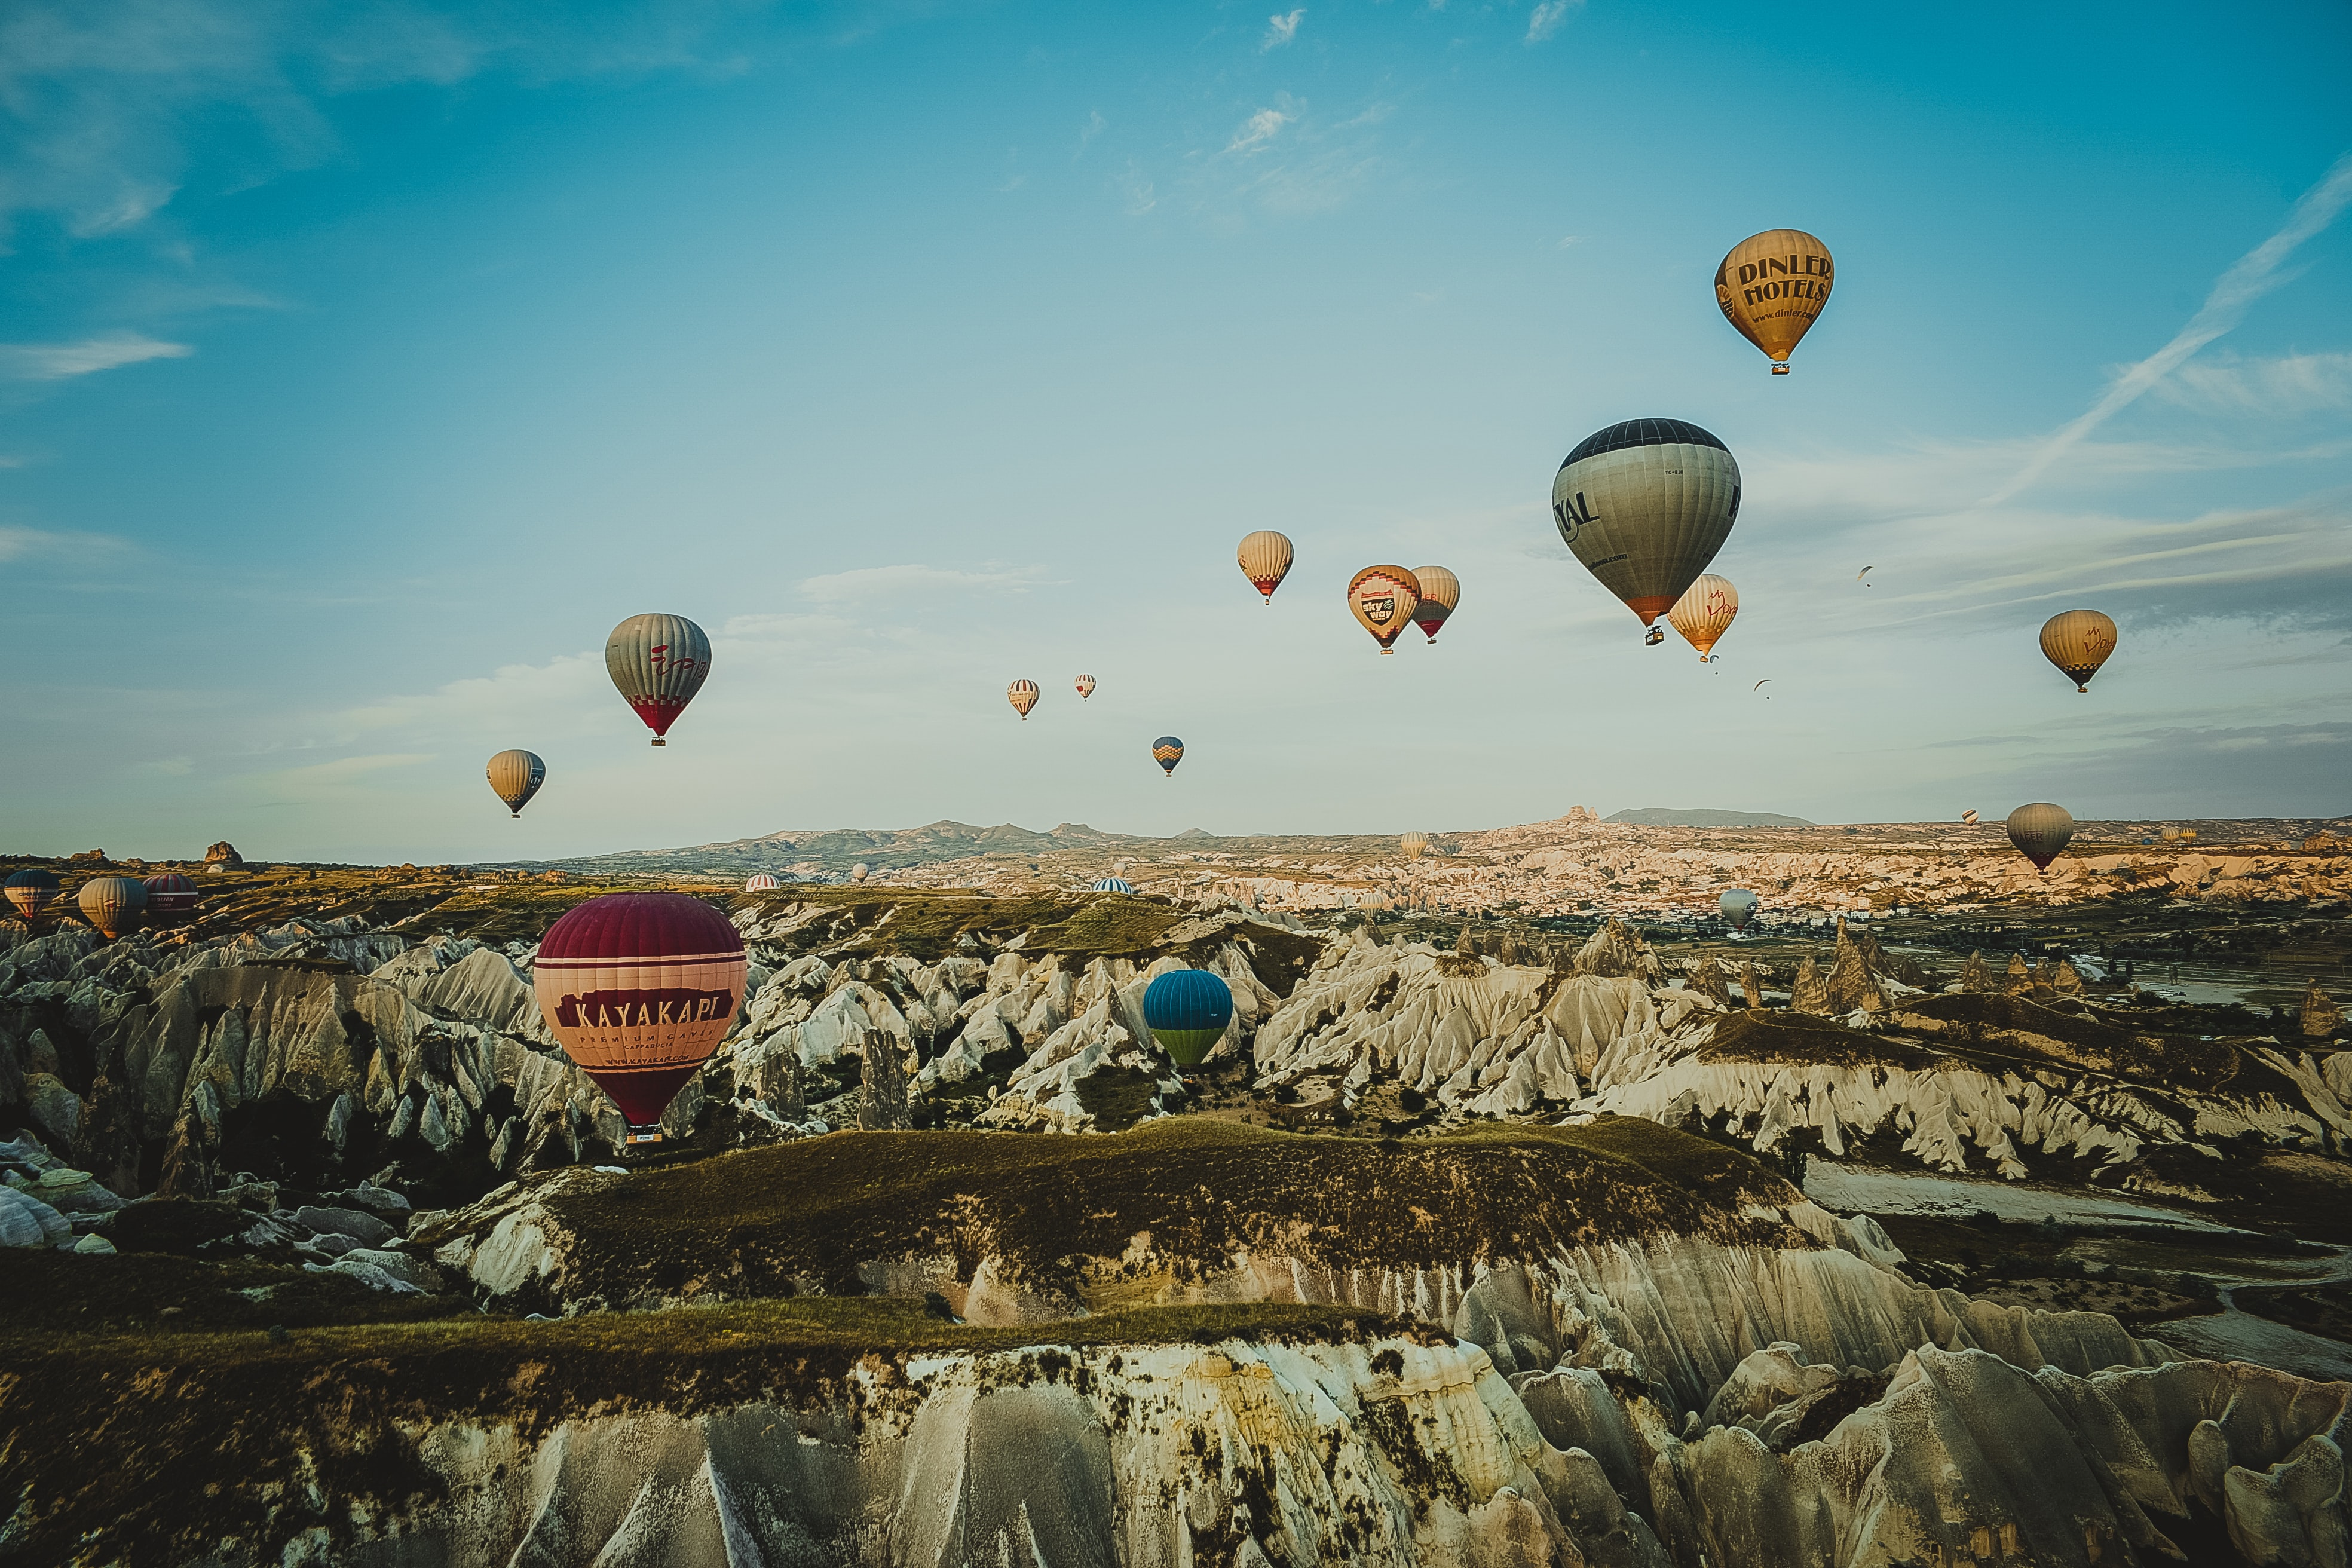 hot air balloons floating in the sky